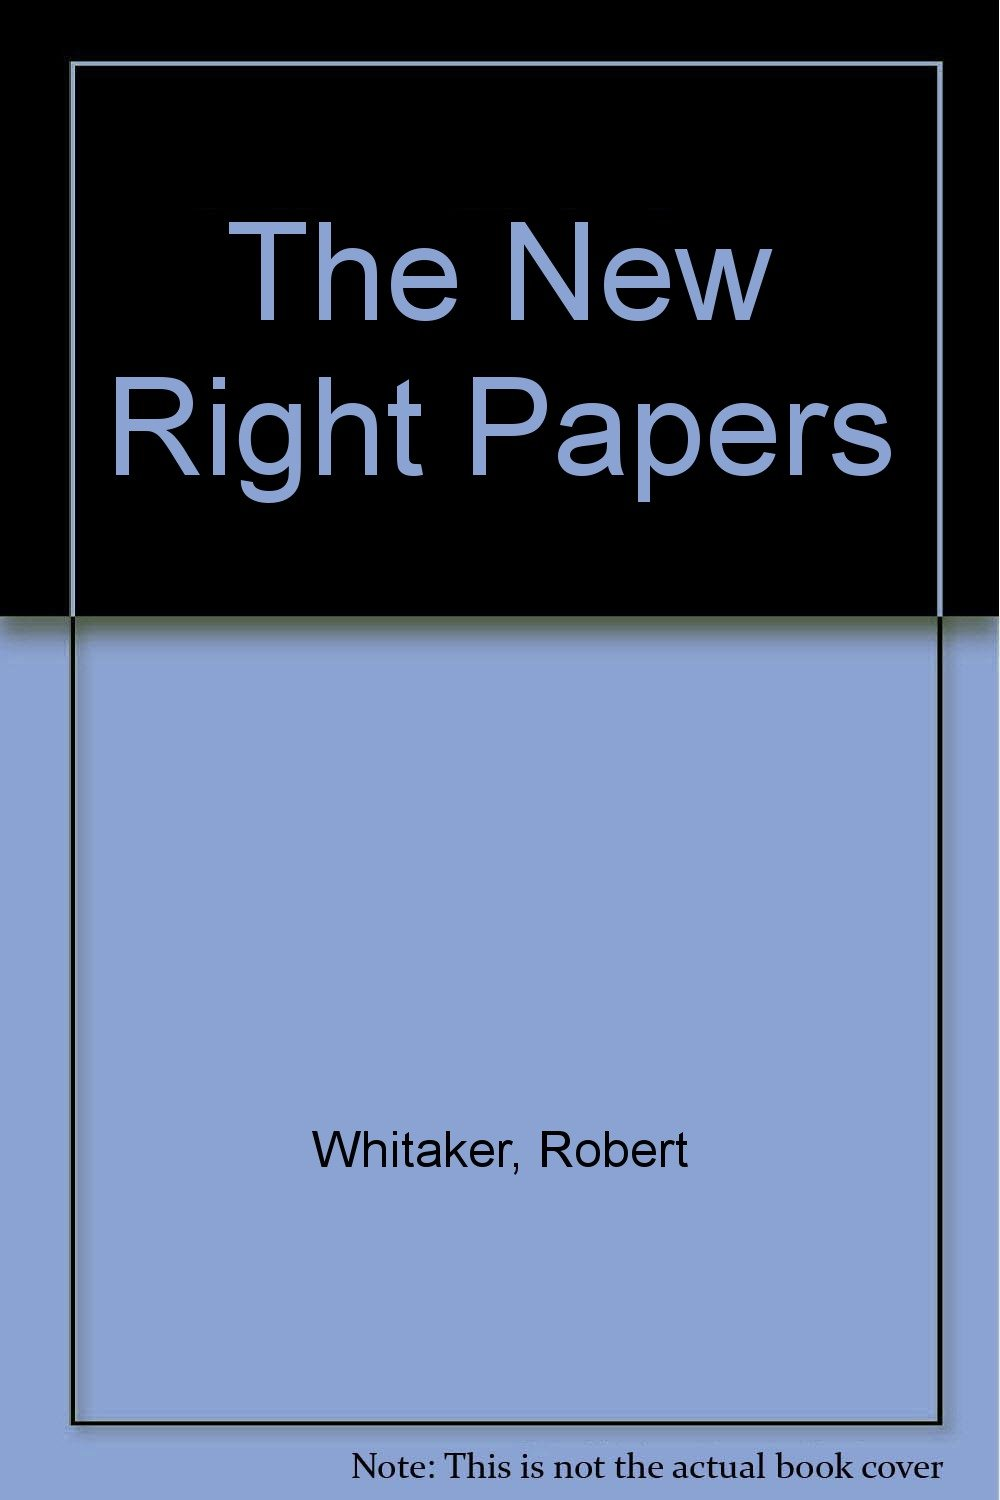 The New Right Papers: Robert Whitaker: 9780312569273: Amazon: Books